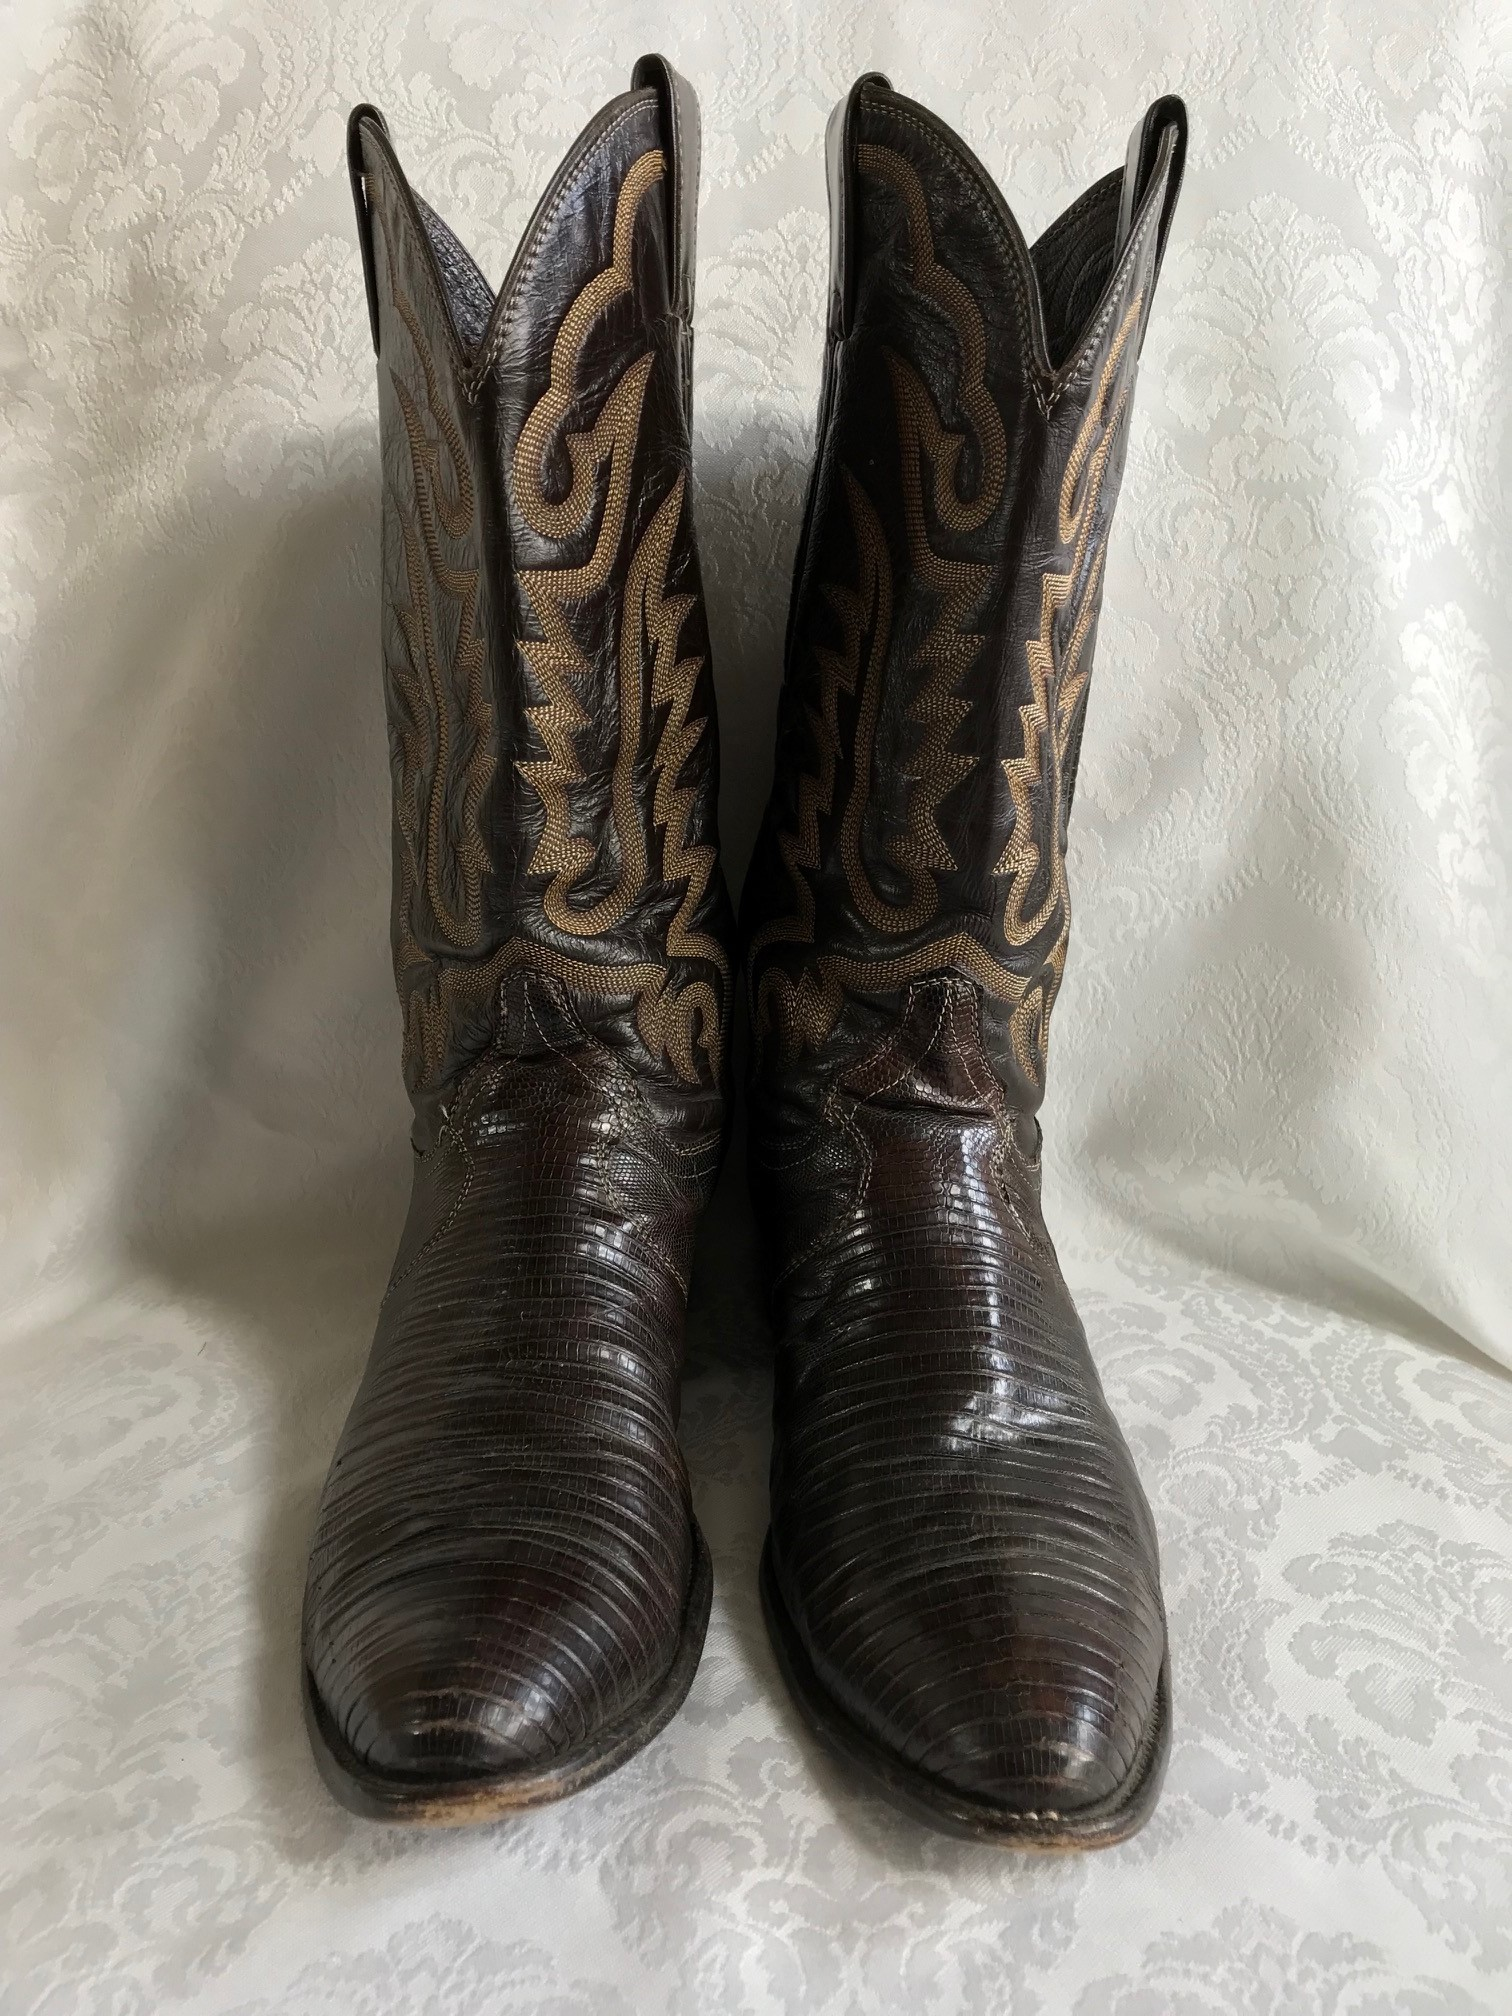 16a39cb6256 Details about Justin Dark Brown Exotic Iguana Lizard Leather Cowboy Roper  Boots 9.5 D